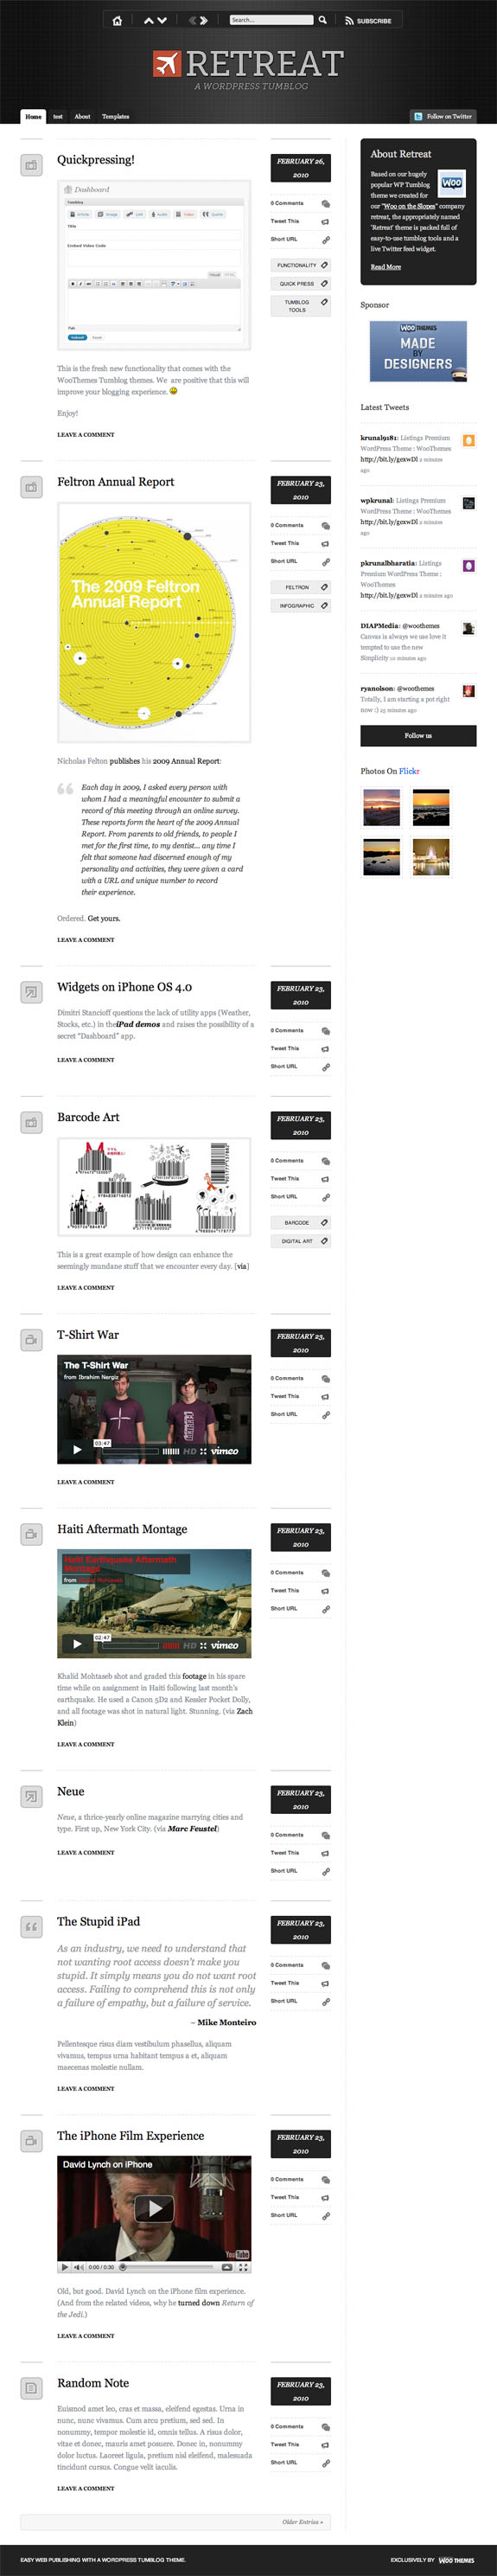 Retreat Premium WordPress Theme